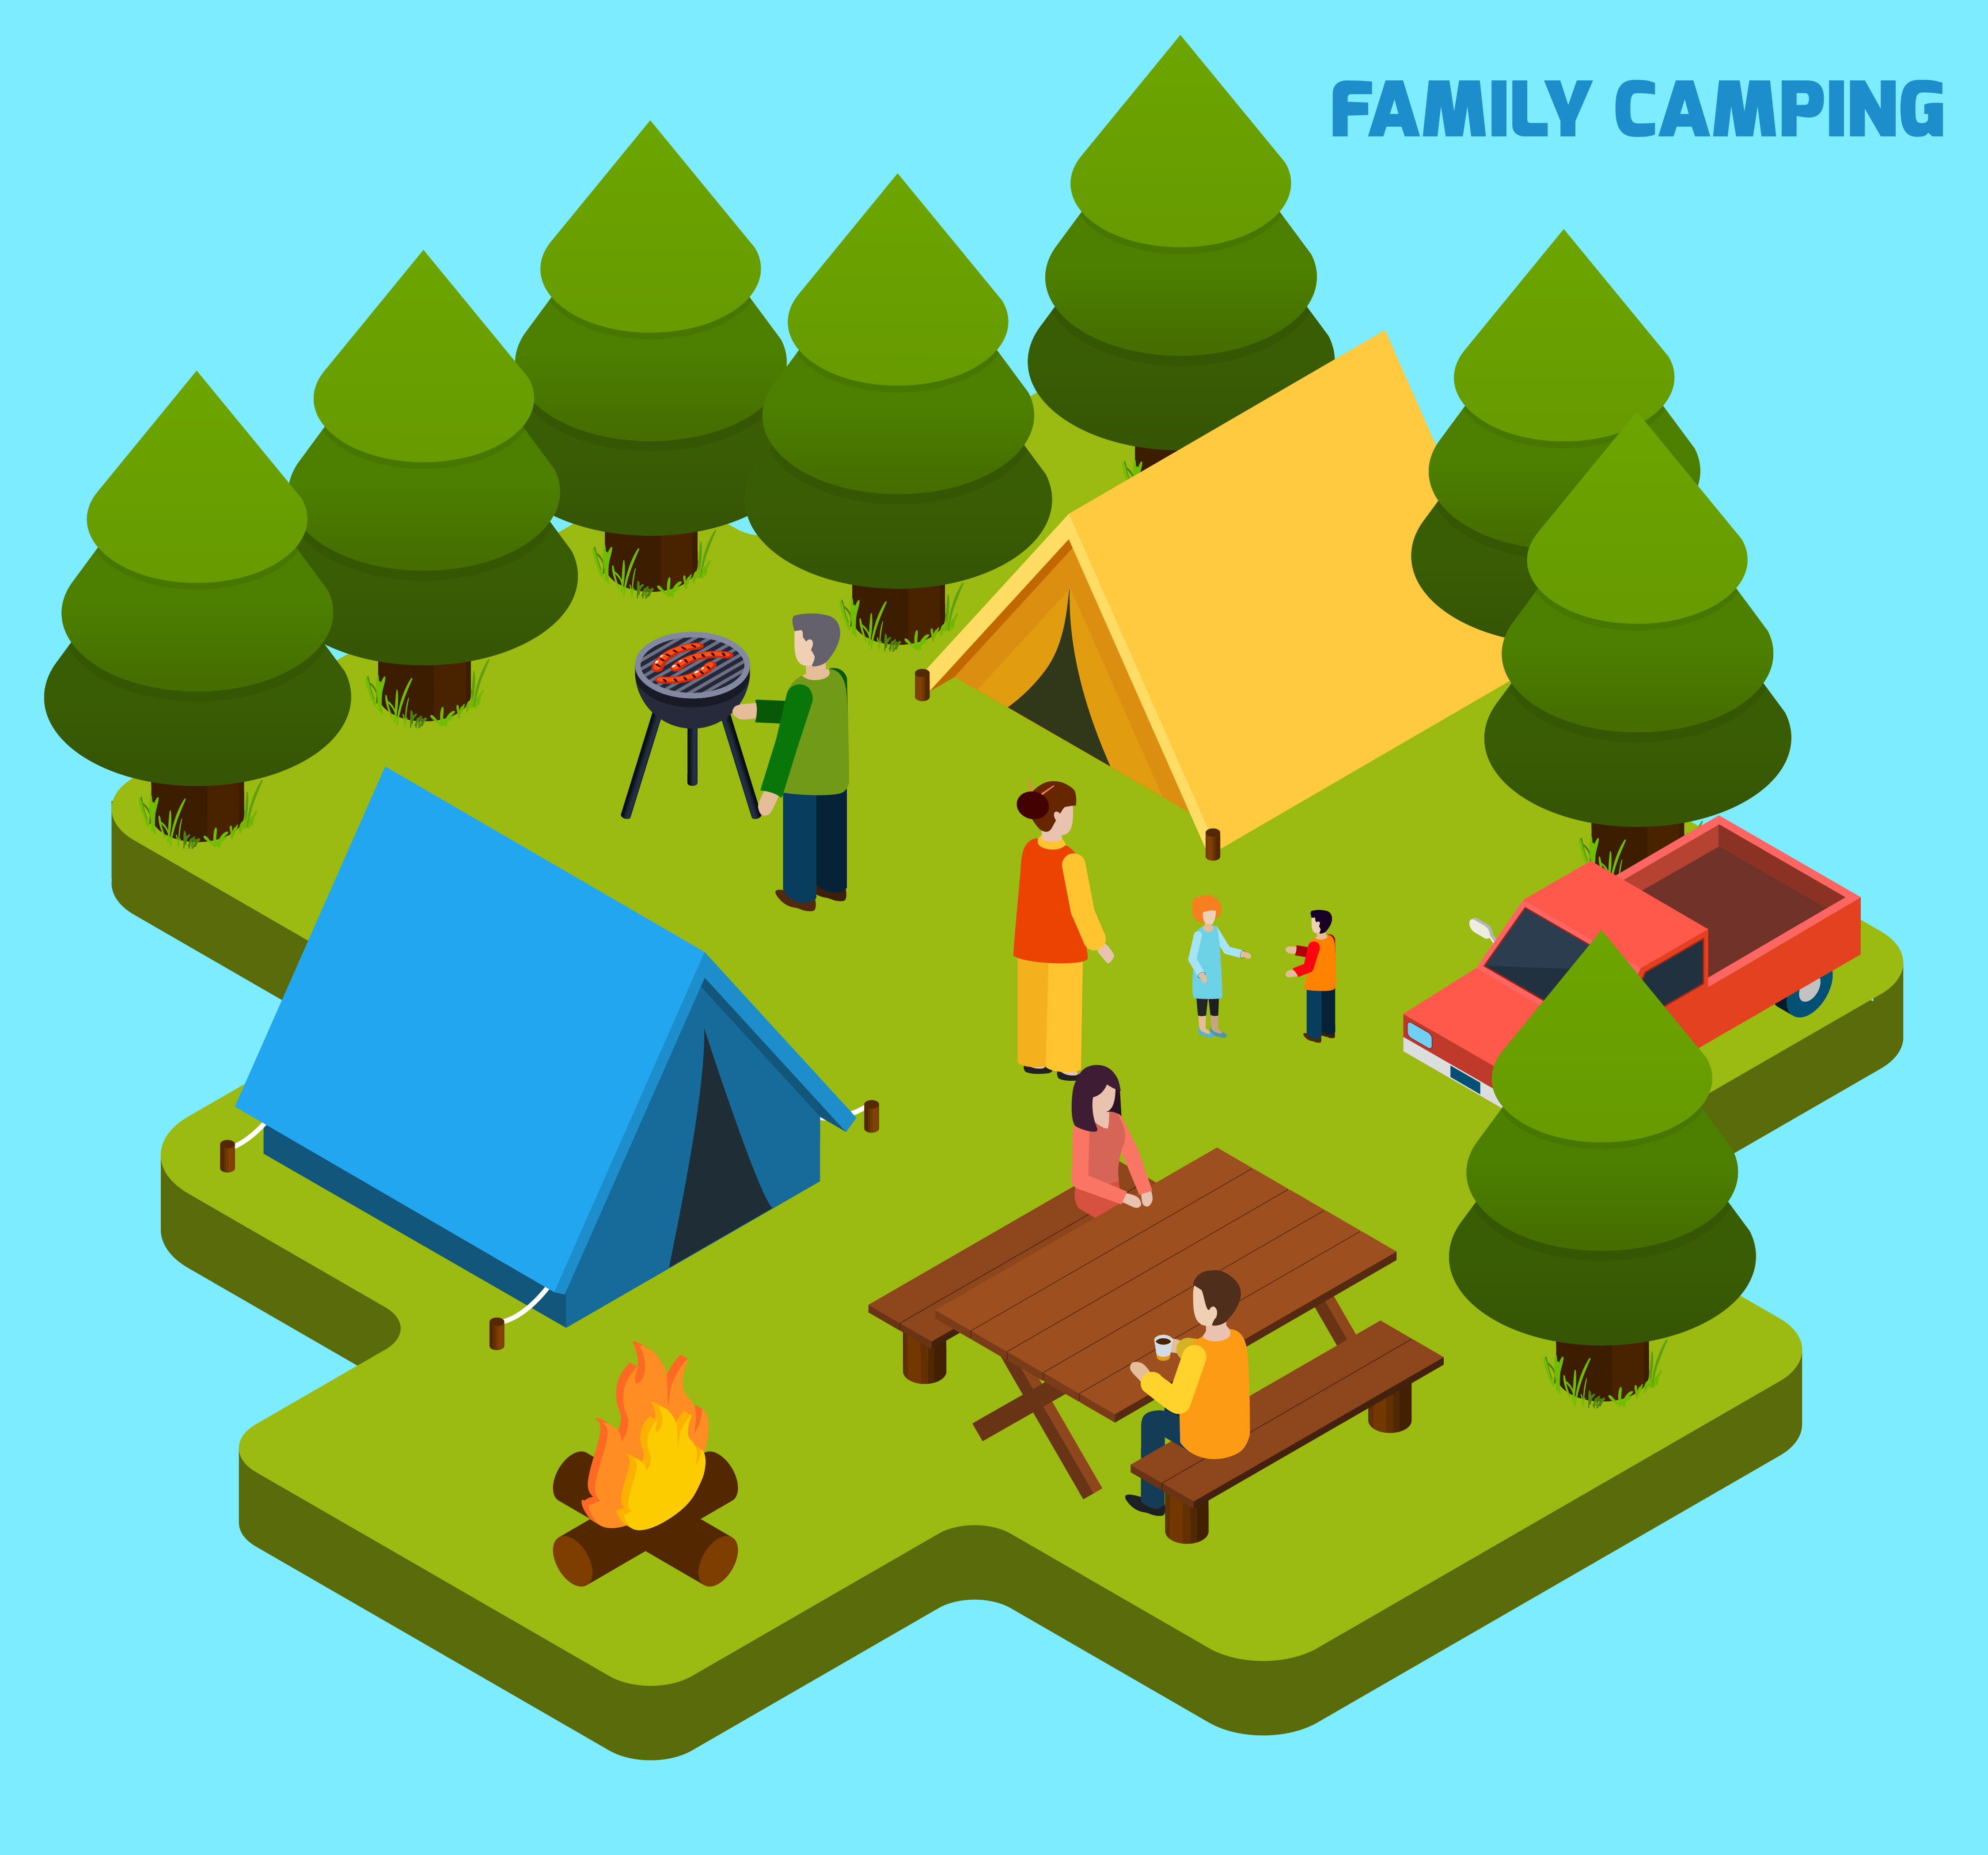 Camping And Travel Isometric Composition Download Free Vectors Clipart Graphics Vector Art